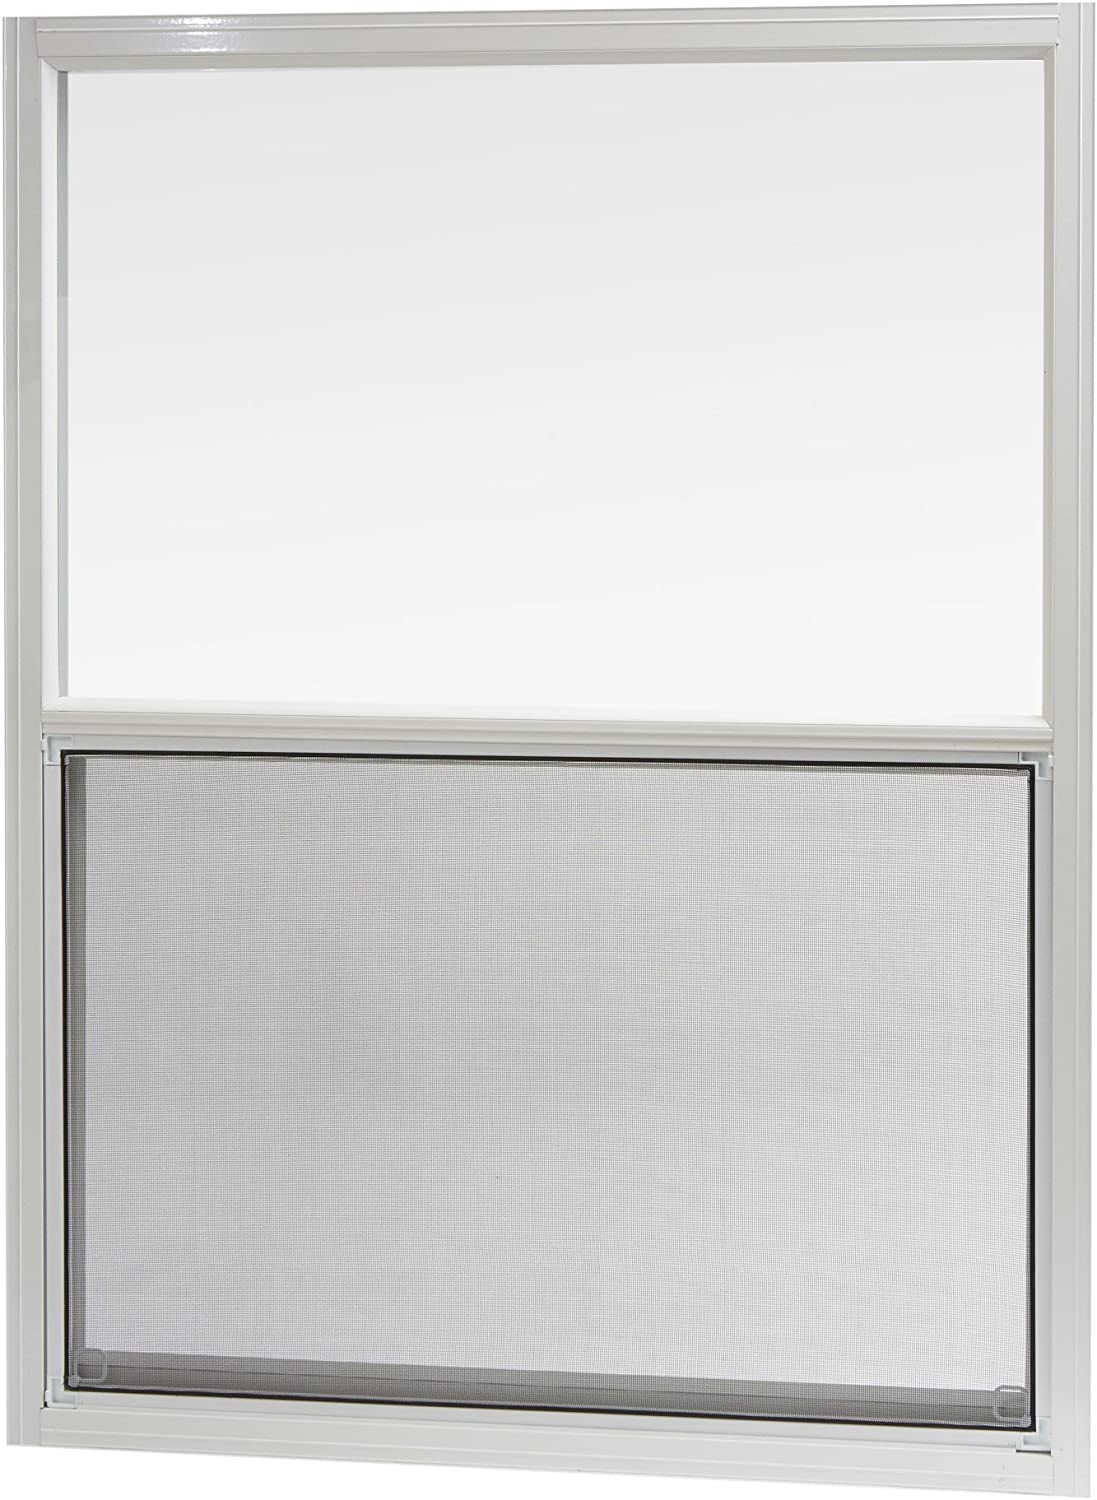 "Park Ridge Products AMHW3040PR Park Ridge White Aluminum Mobile Home Single Hung Window, 30"" x 40"""